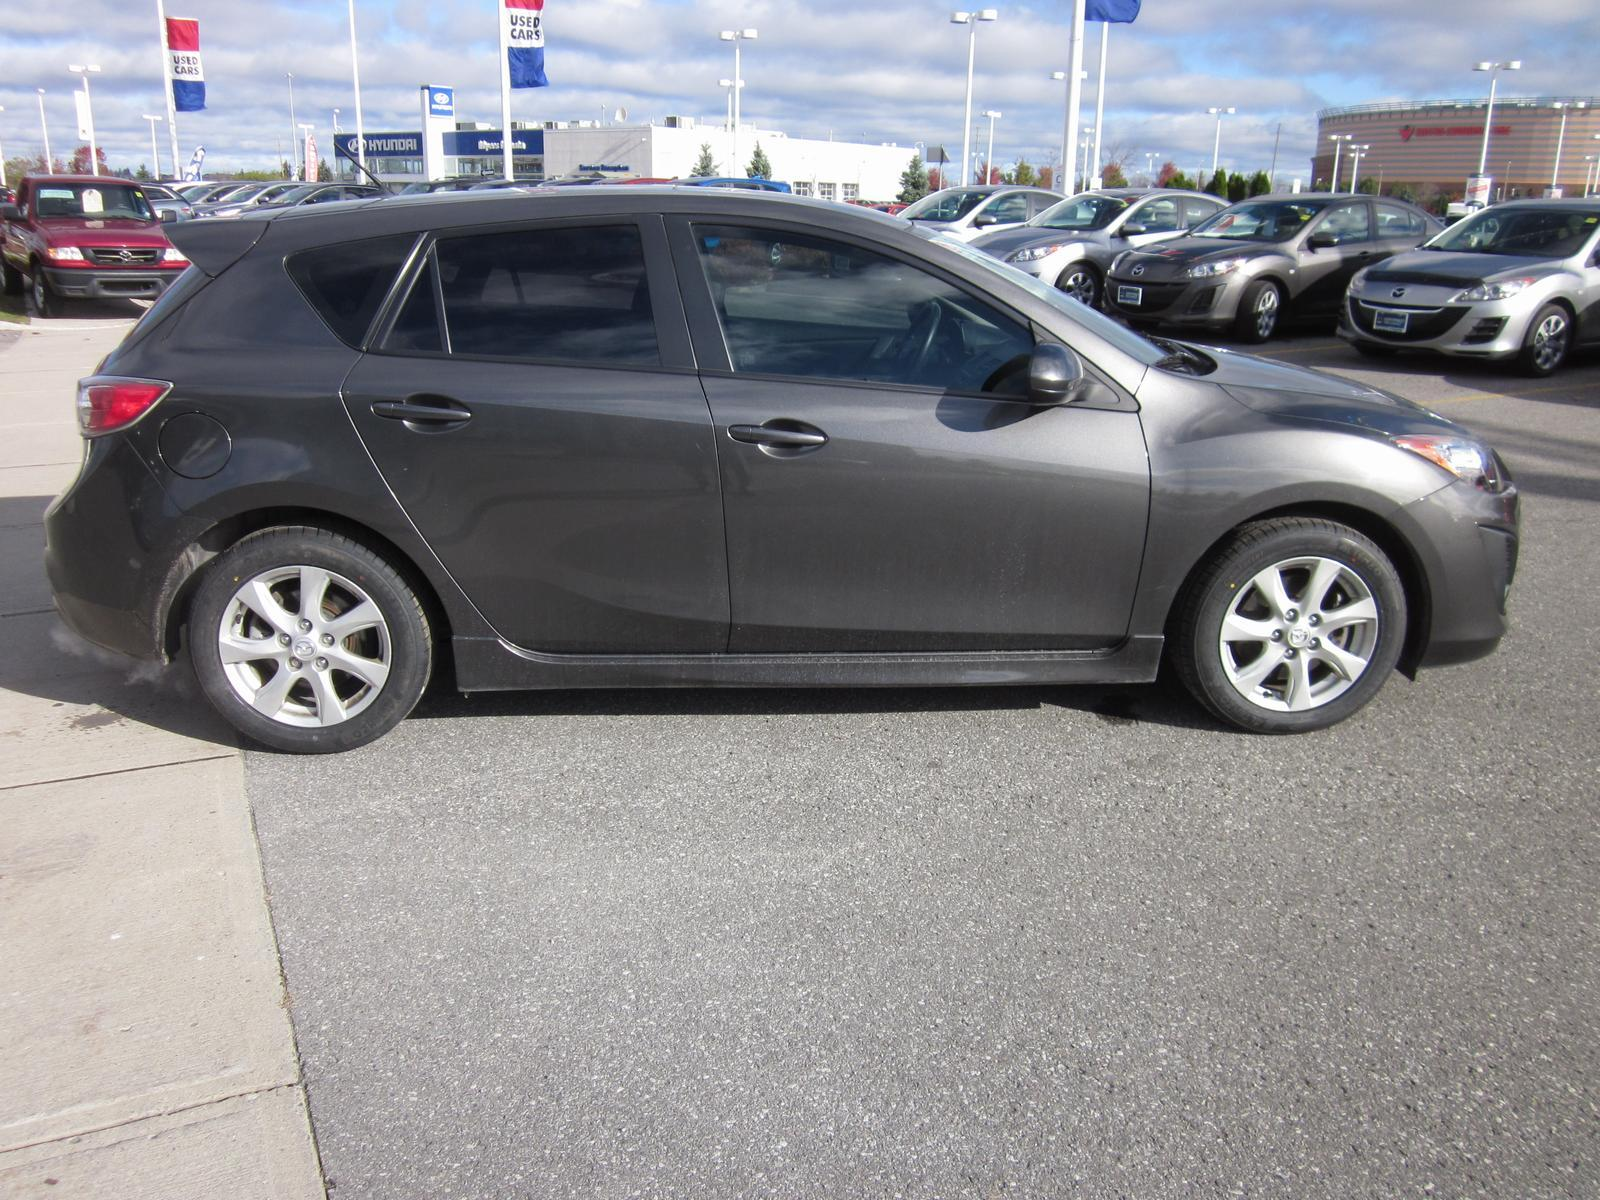 Used 2011 Mazda 3 Sport GS-LUX in Kanata sport for sale free image editor